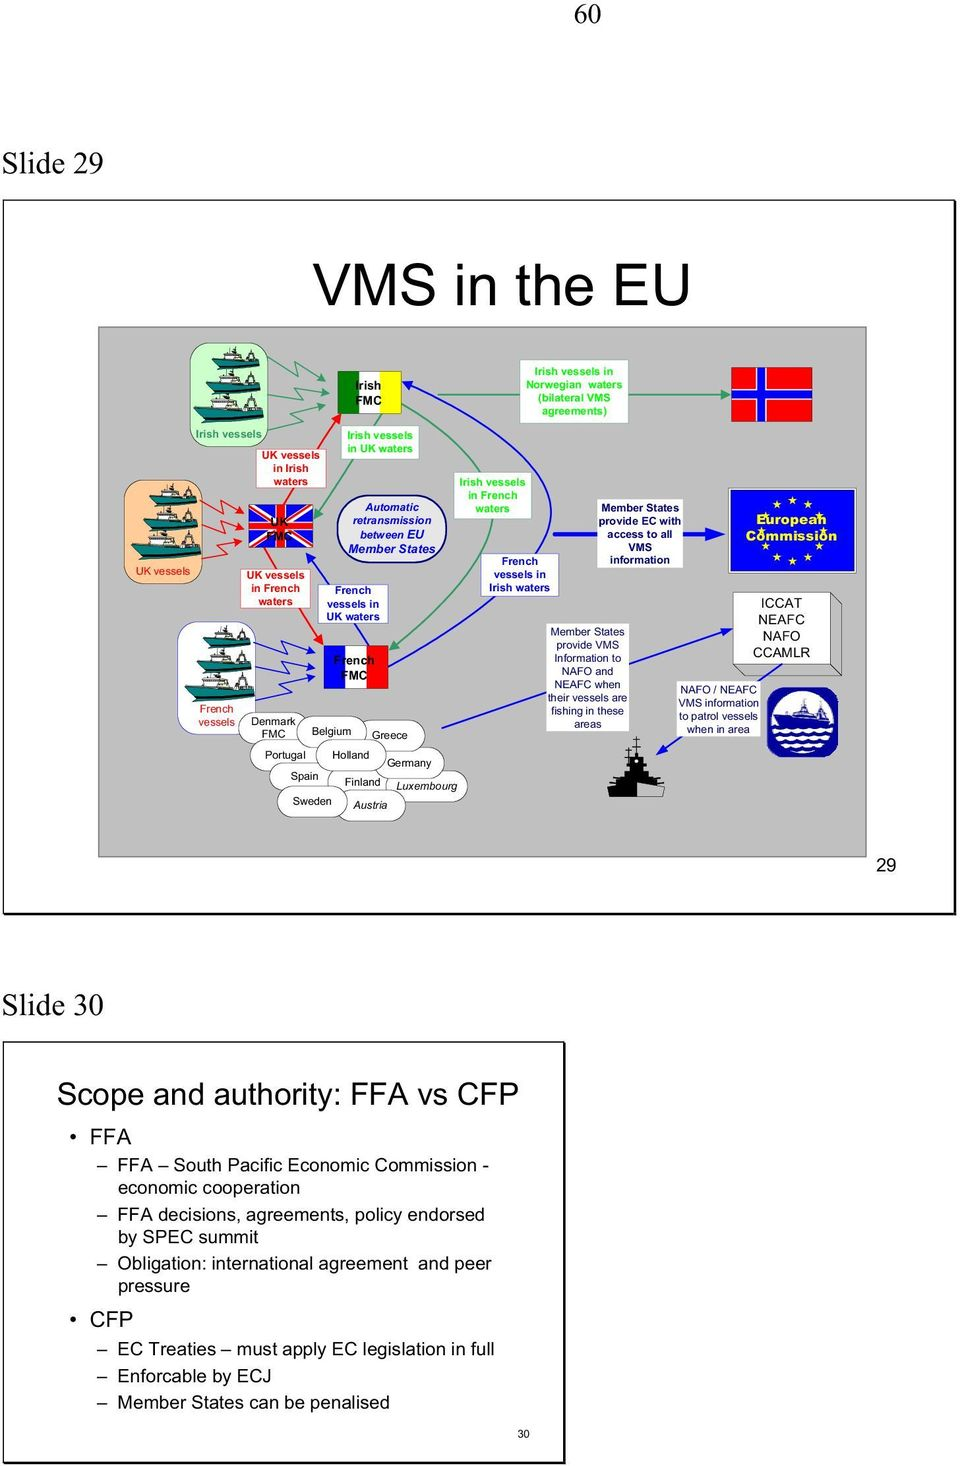 Austria Irish vessels in French waters French vessels in Irish waters Member States provide VMS Information to NAFO and NEAFC when their vessels are fishing in these areas Member States provide EC